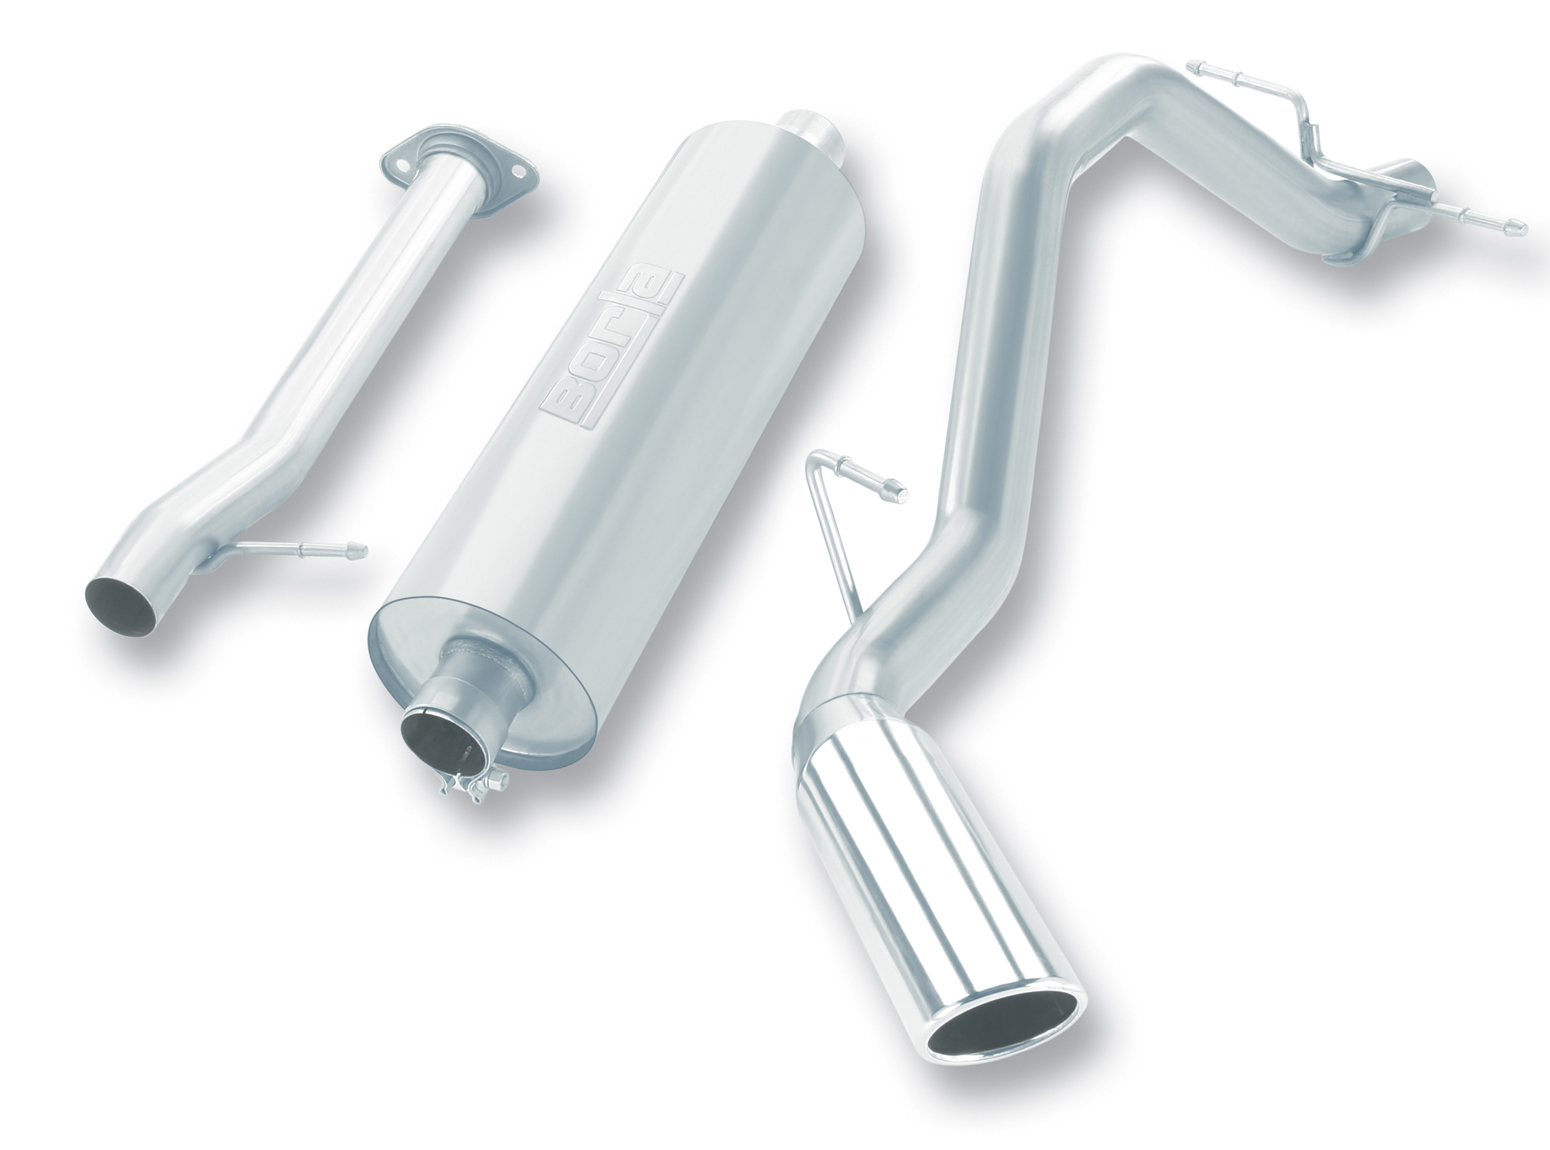 "Chevrolet Silverado 1500 2007-2008 Borla 2.75"" Cat-Back Exhaust System - Single Round Rolled Angle-Cut  Long X Single Round Rolled Angle-Cut Intercooled"" Dia"